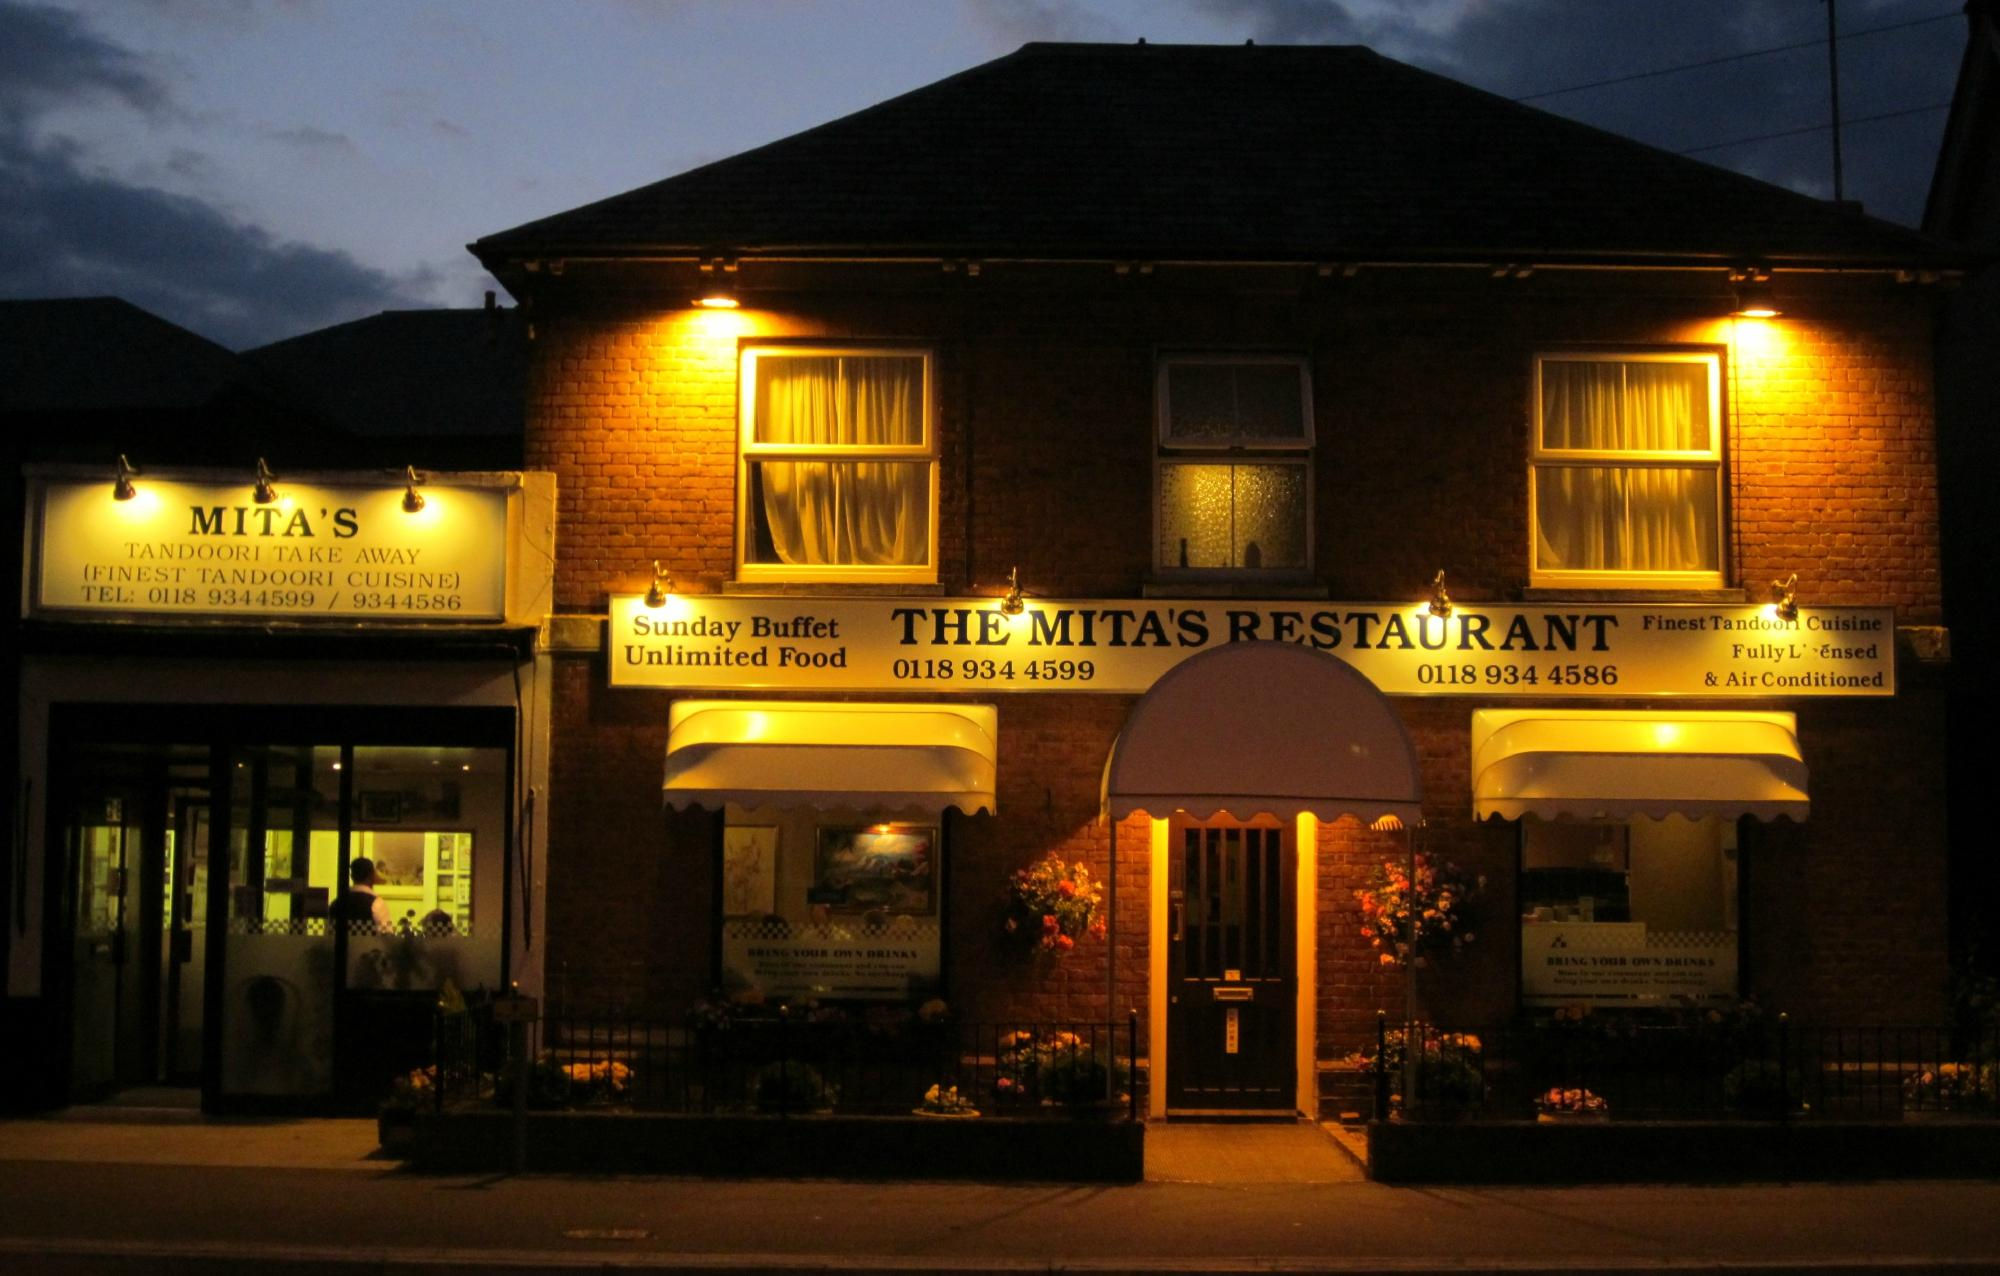 The Mita's Restaurant